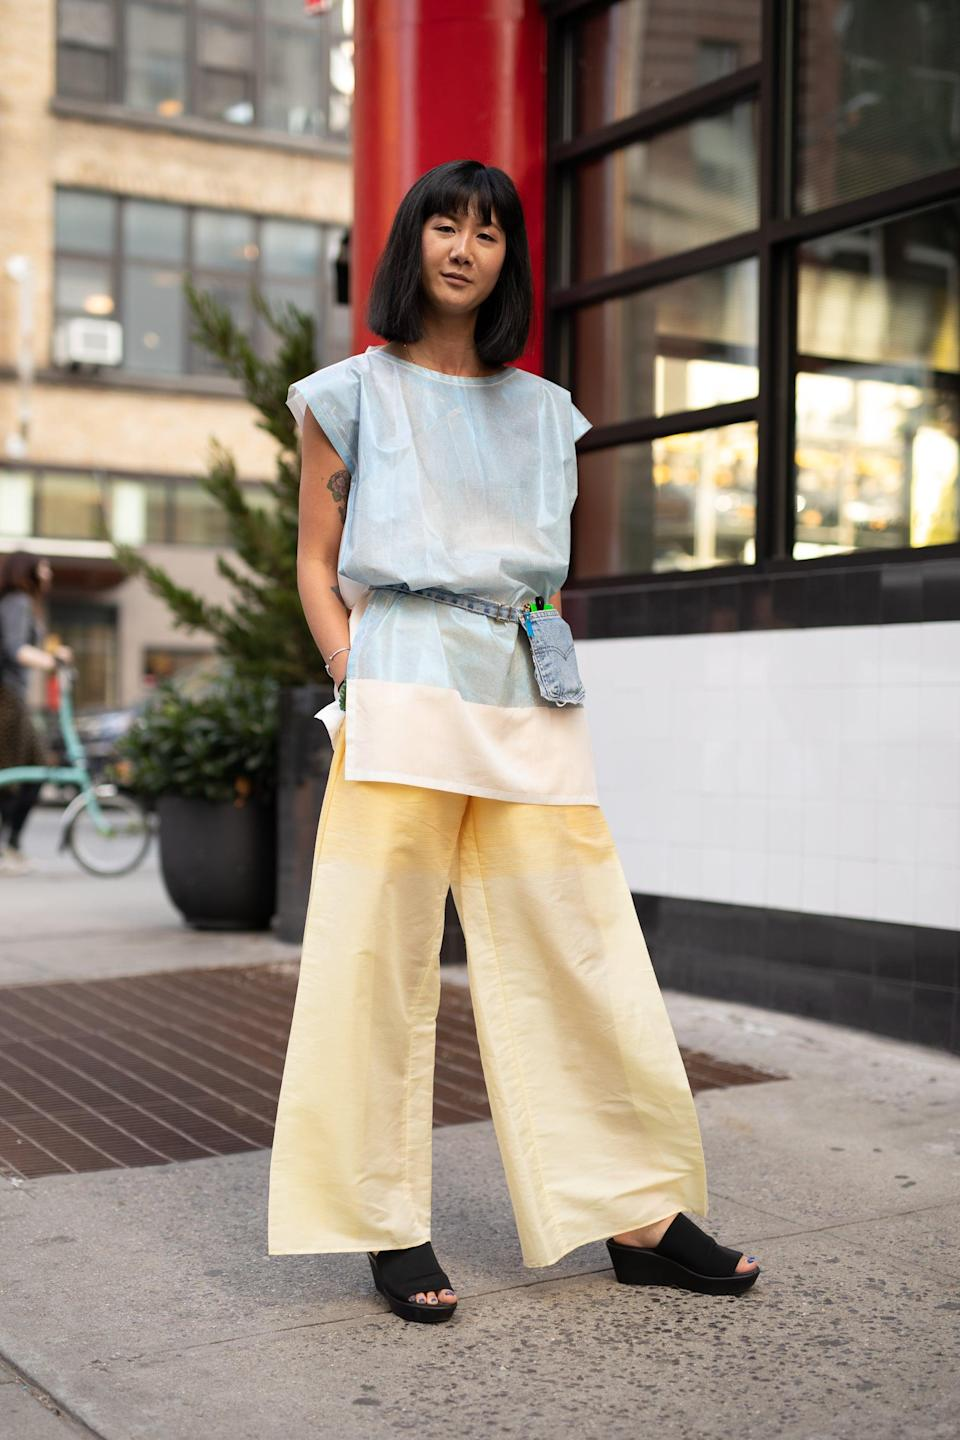 <p>Define your waist, and mix up proportions with a longer top belted right over.</p>